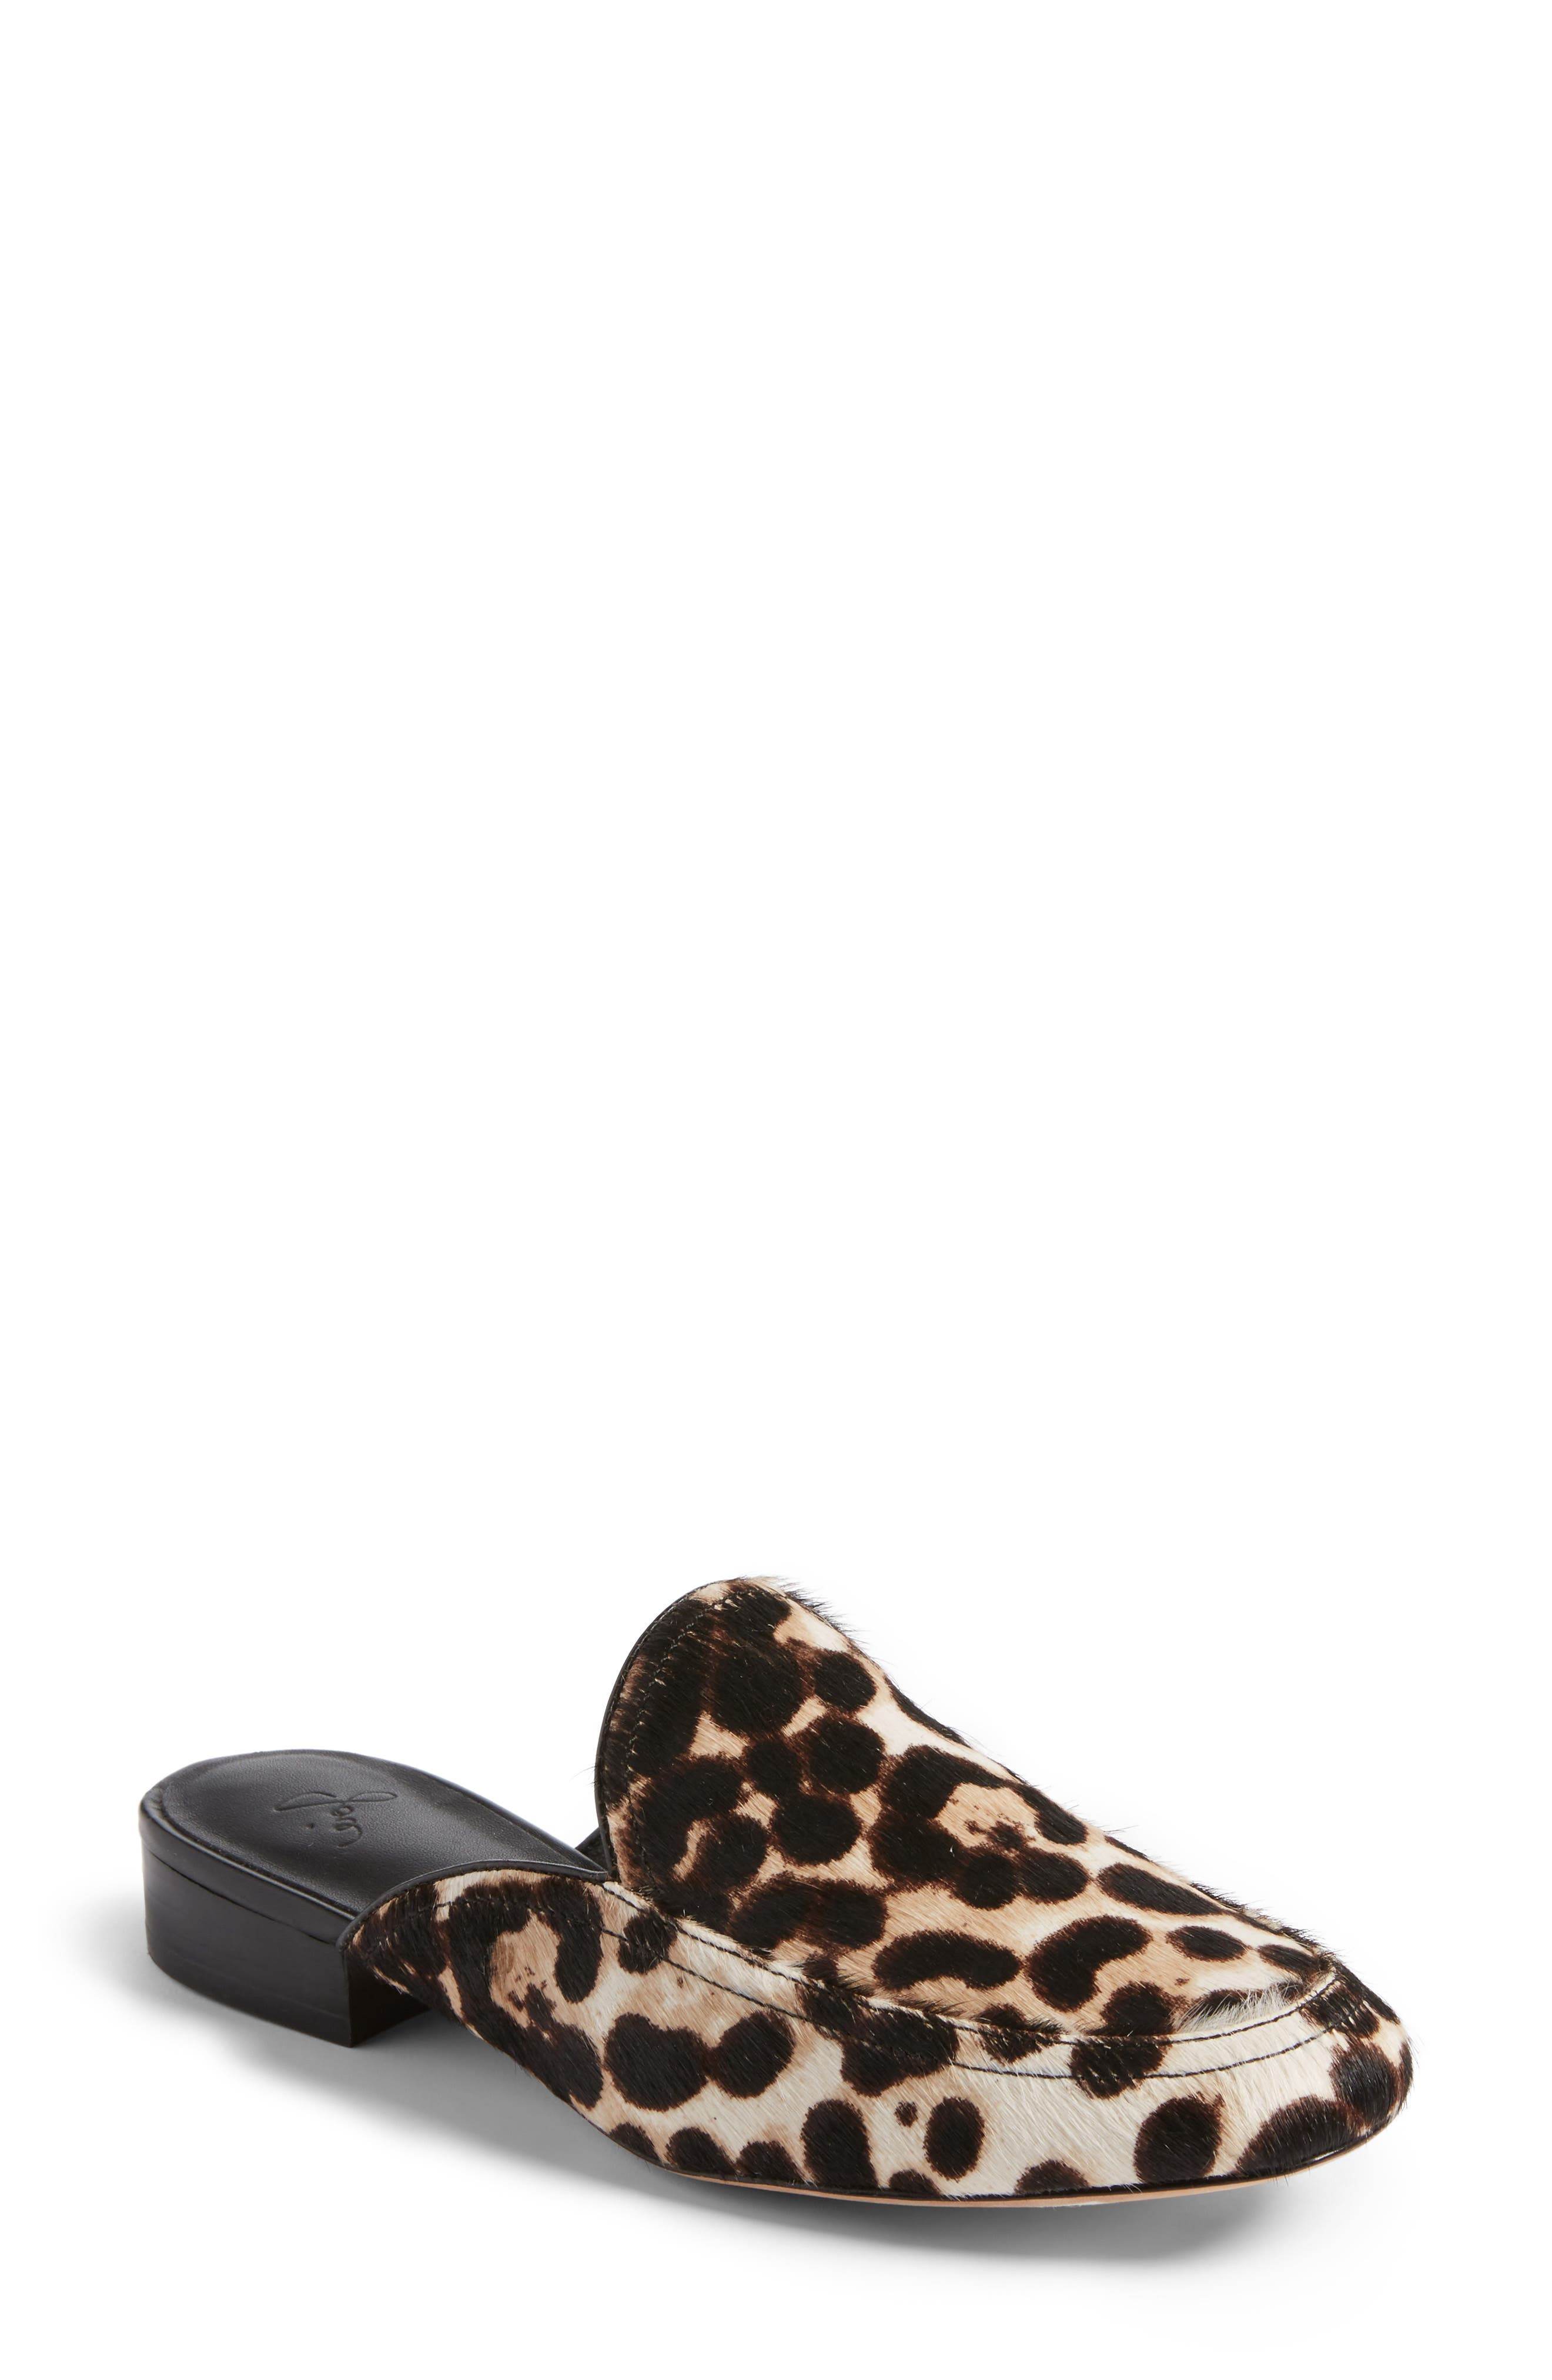 Joie Delaney Slide Loafer (Women)